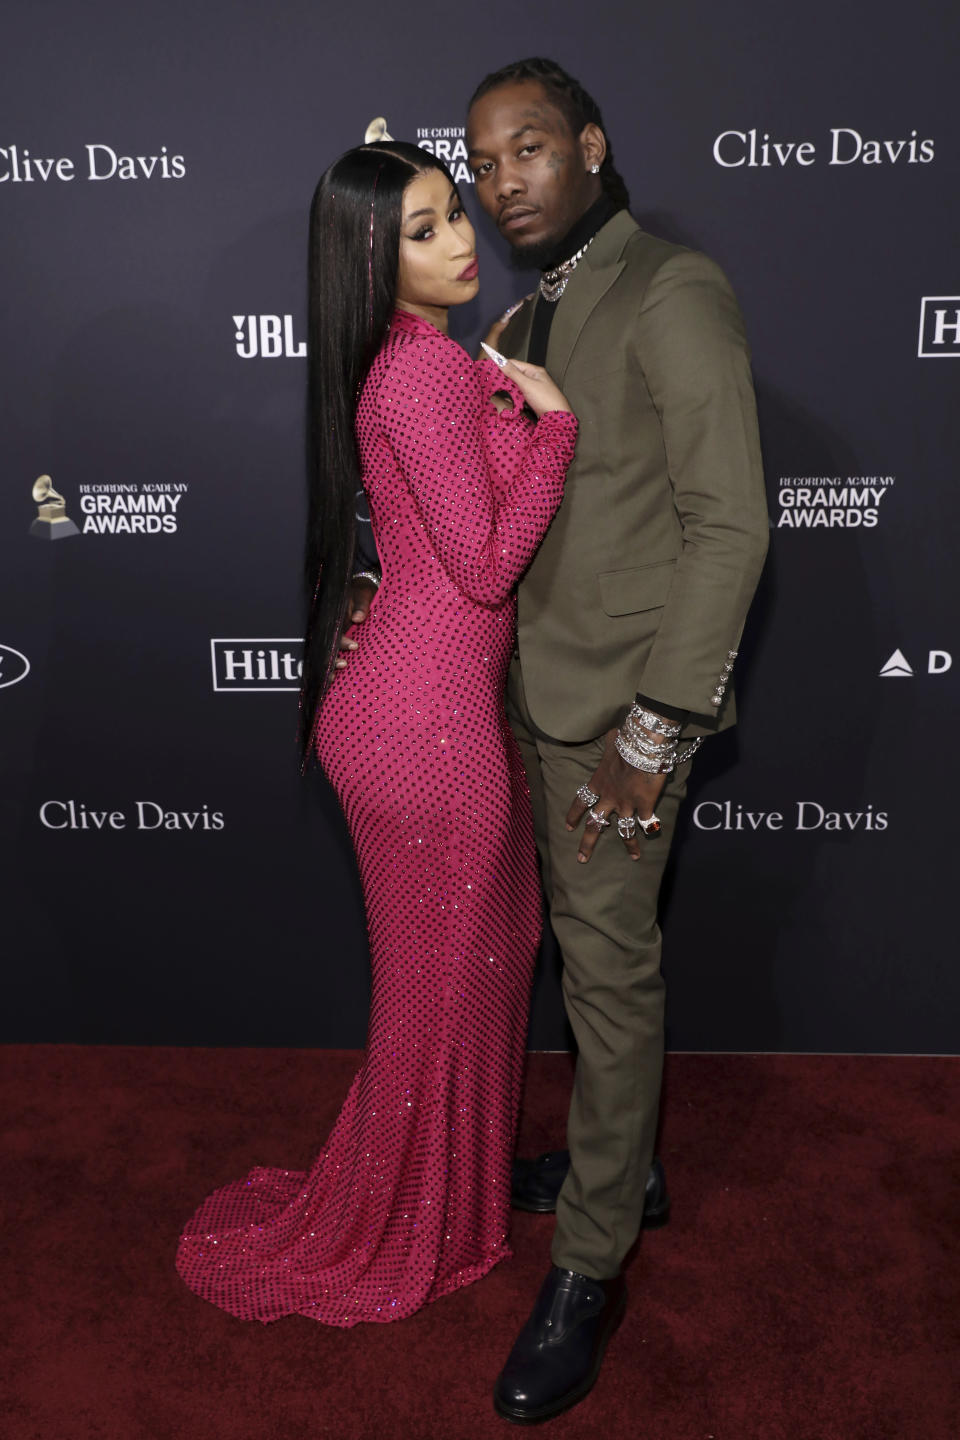 Cardi B, left, and Offset arrive at the Pre-Grammy Gala And Salute To Industry Icons at the Beverly Hilton Hotel on Saturday, Jan. 25, 2020, in Beverly Hills, Calif. (Photo by Mark Von Holden/Invision/AP)